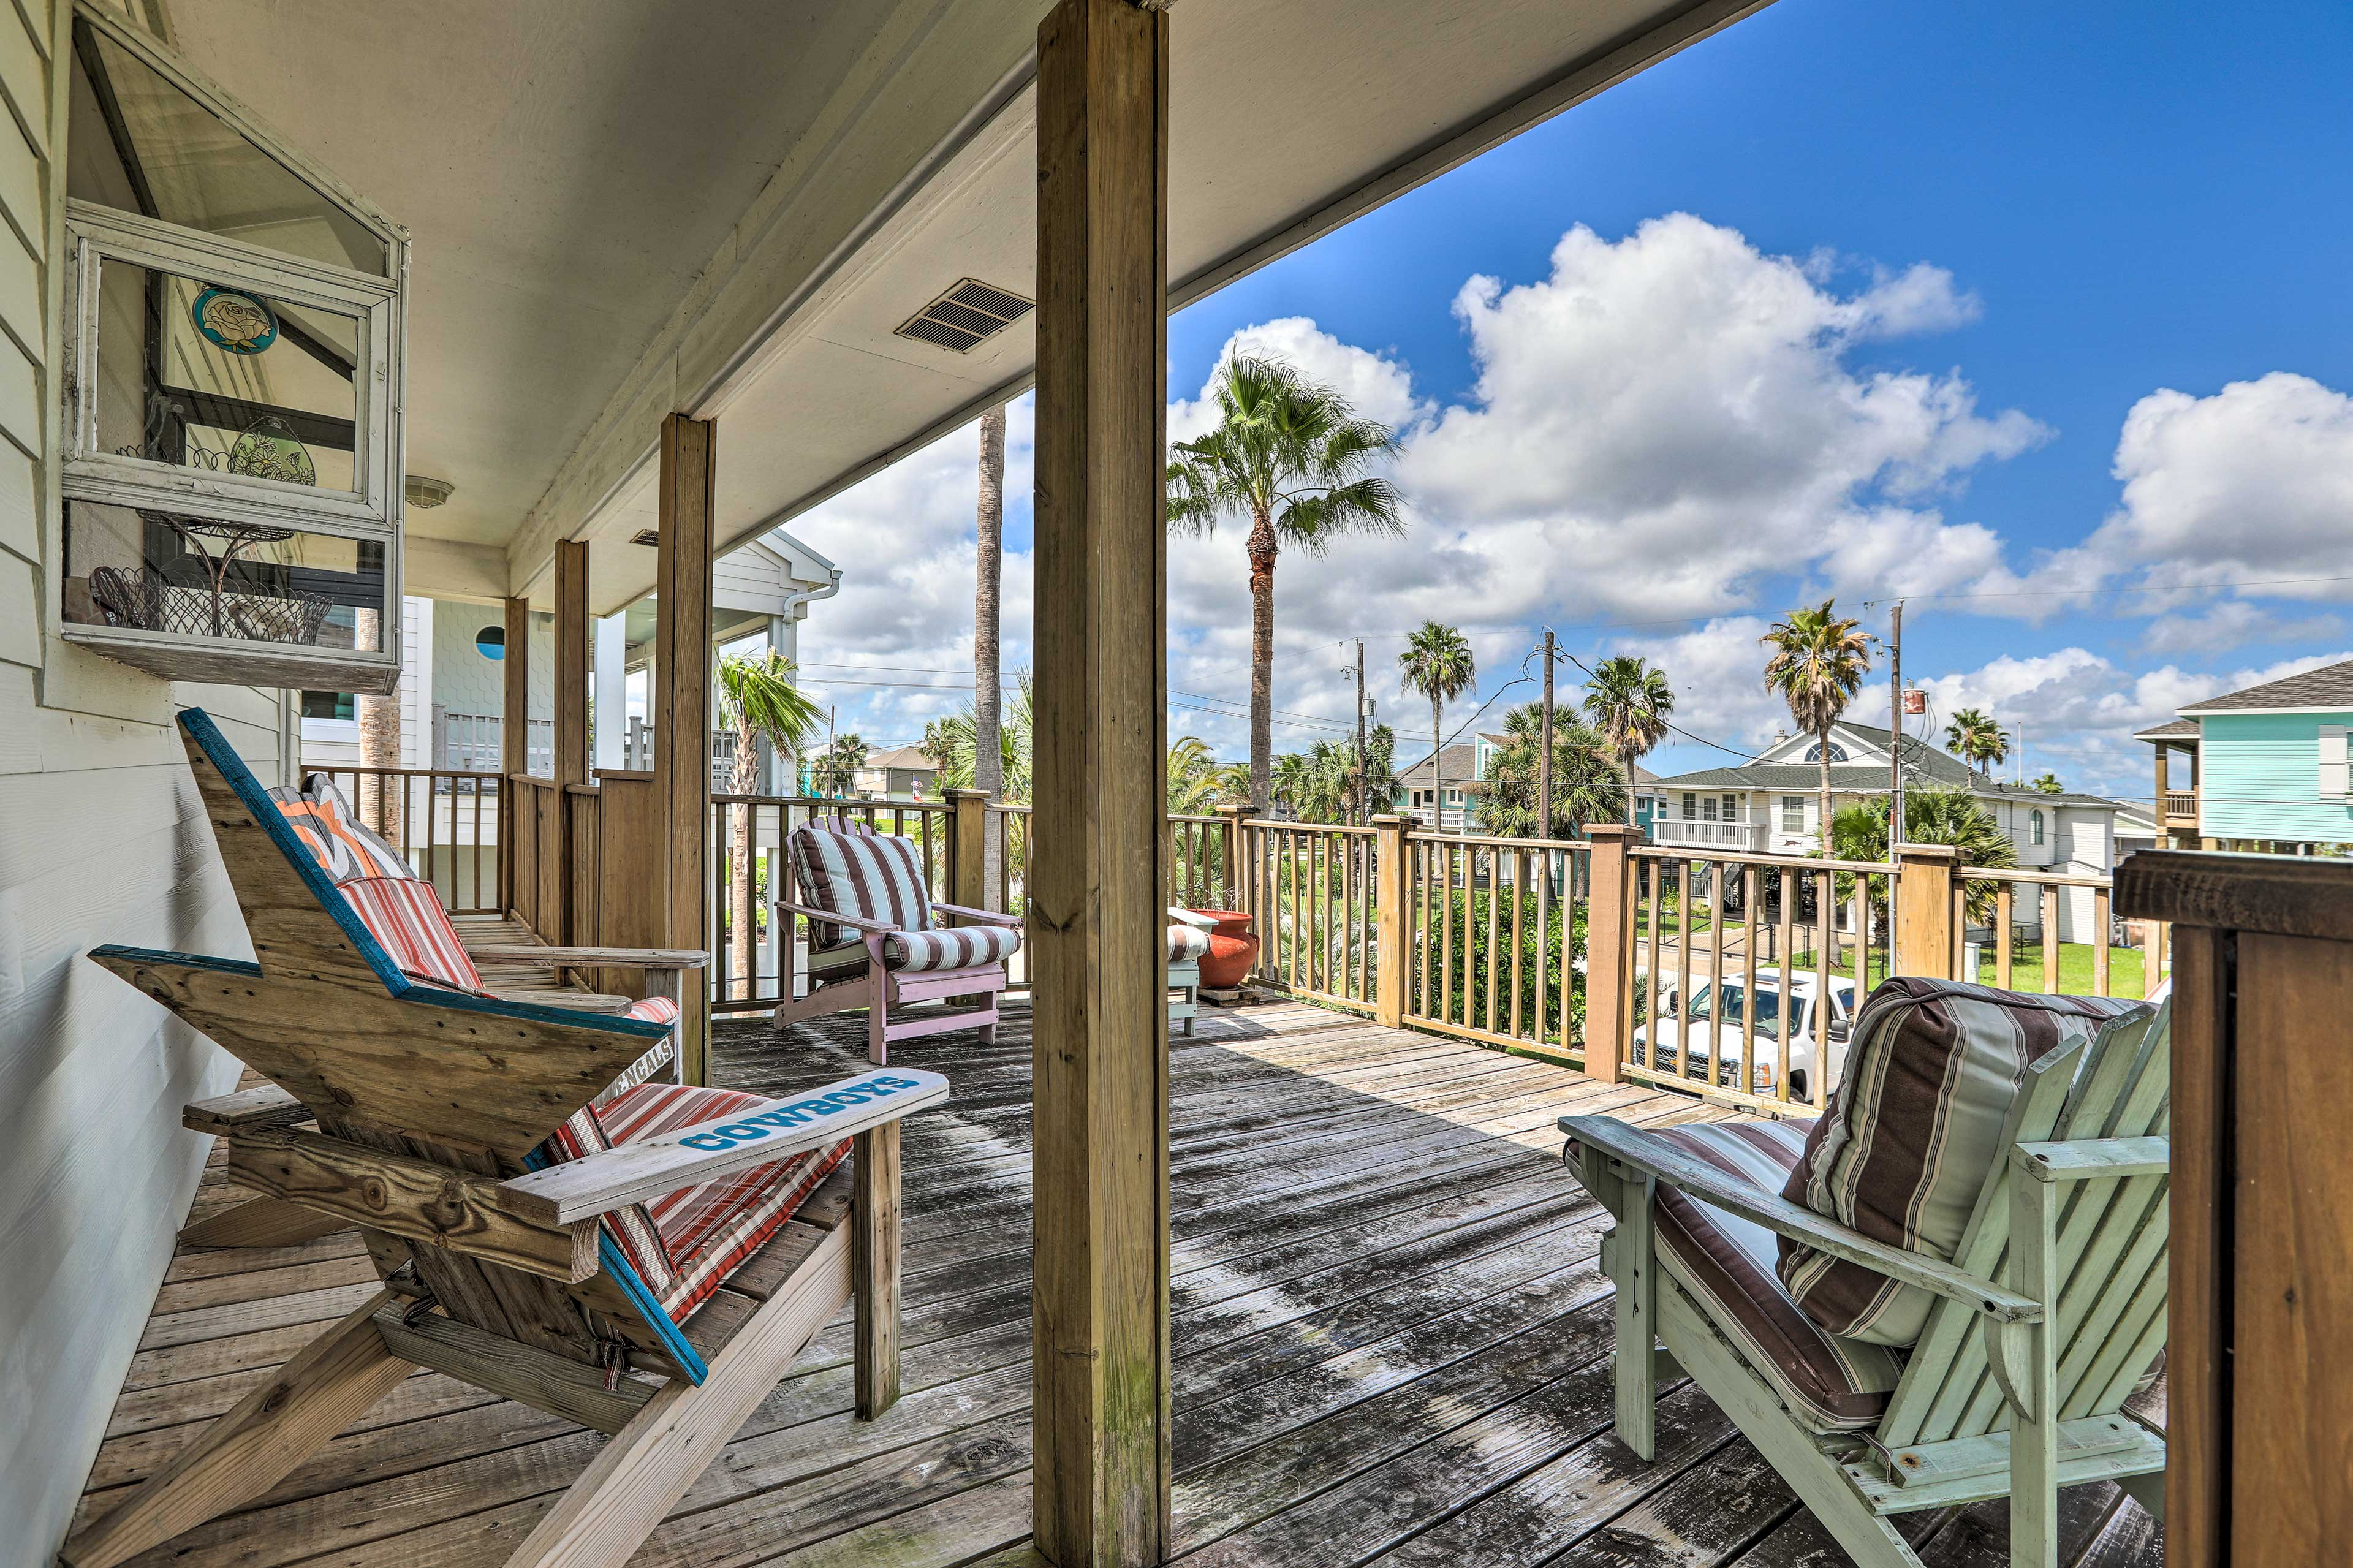 This Galveston vacation rental features 2 private decks!